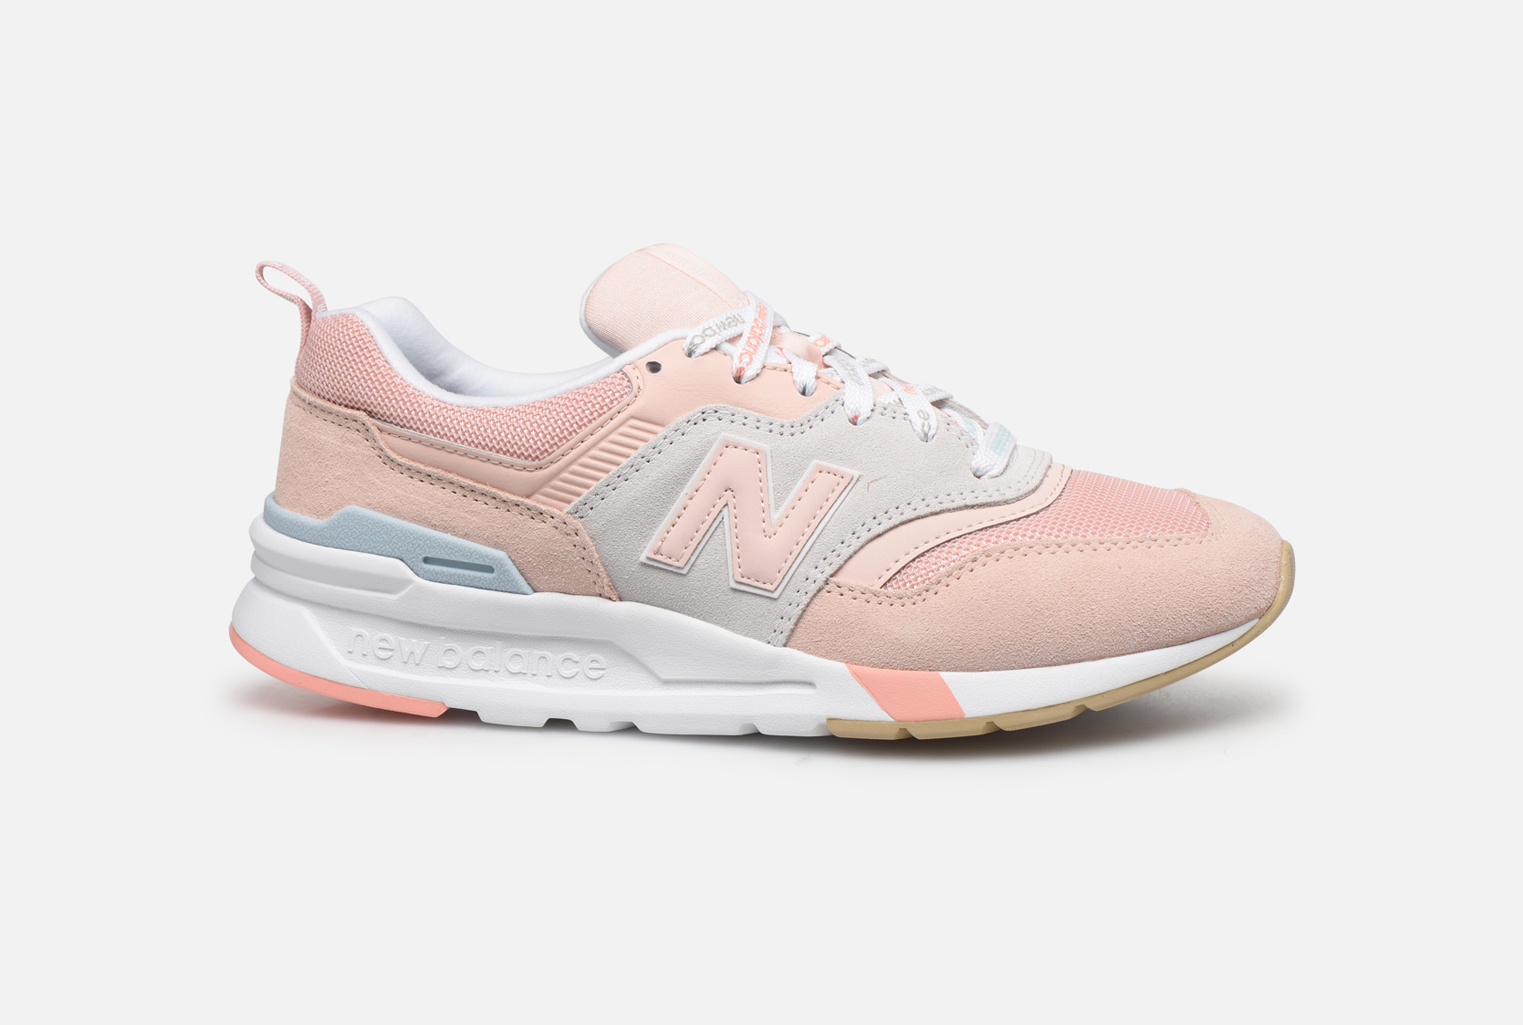 New Balance | Boutique de chaussures New Balance